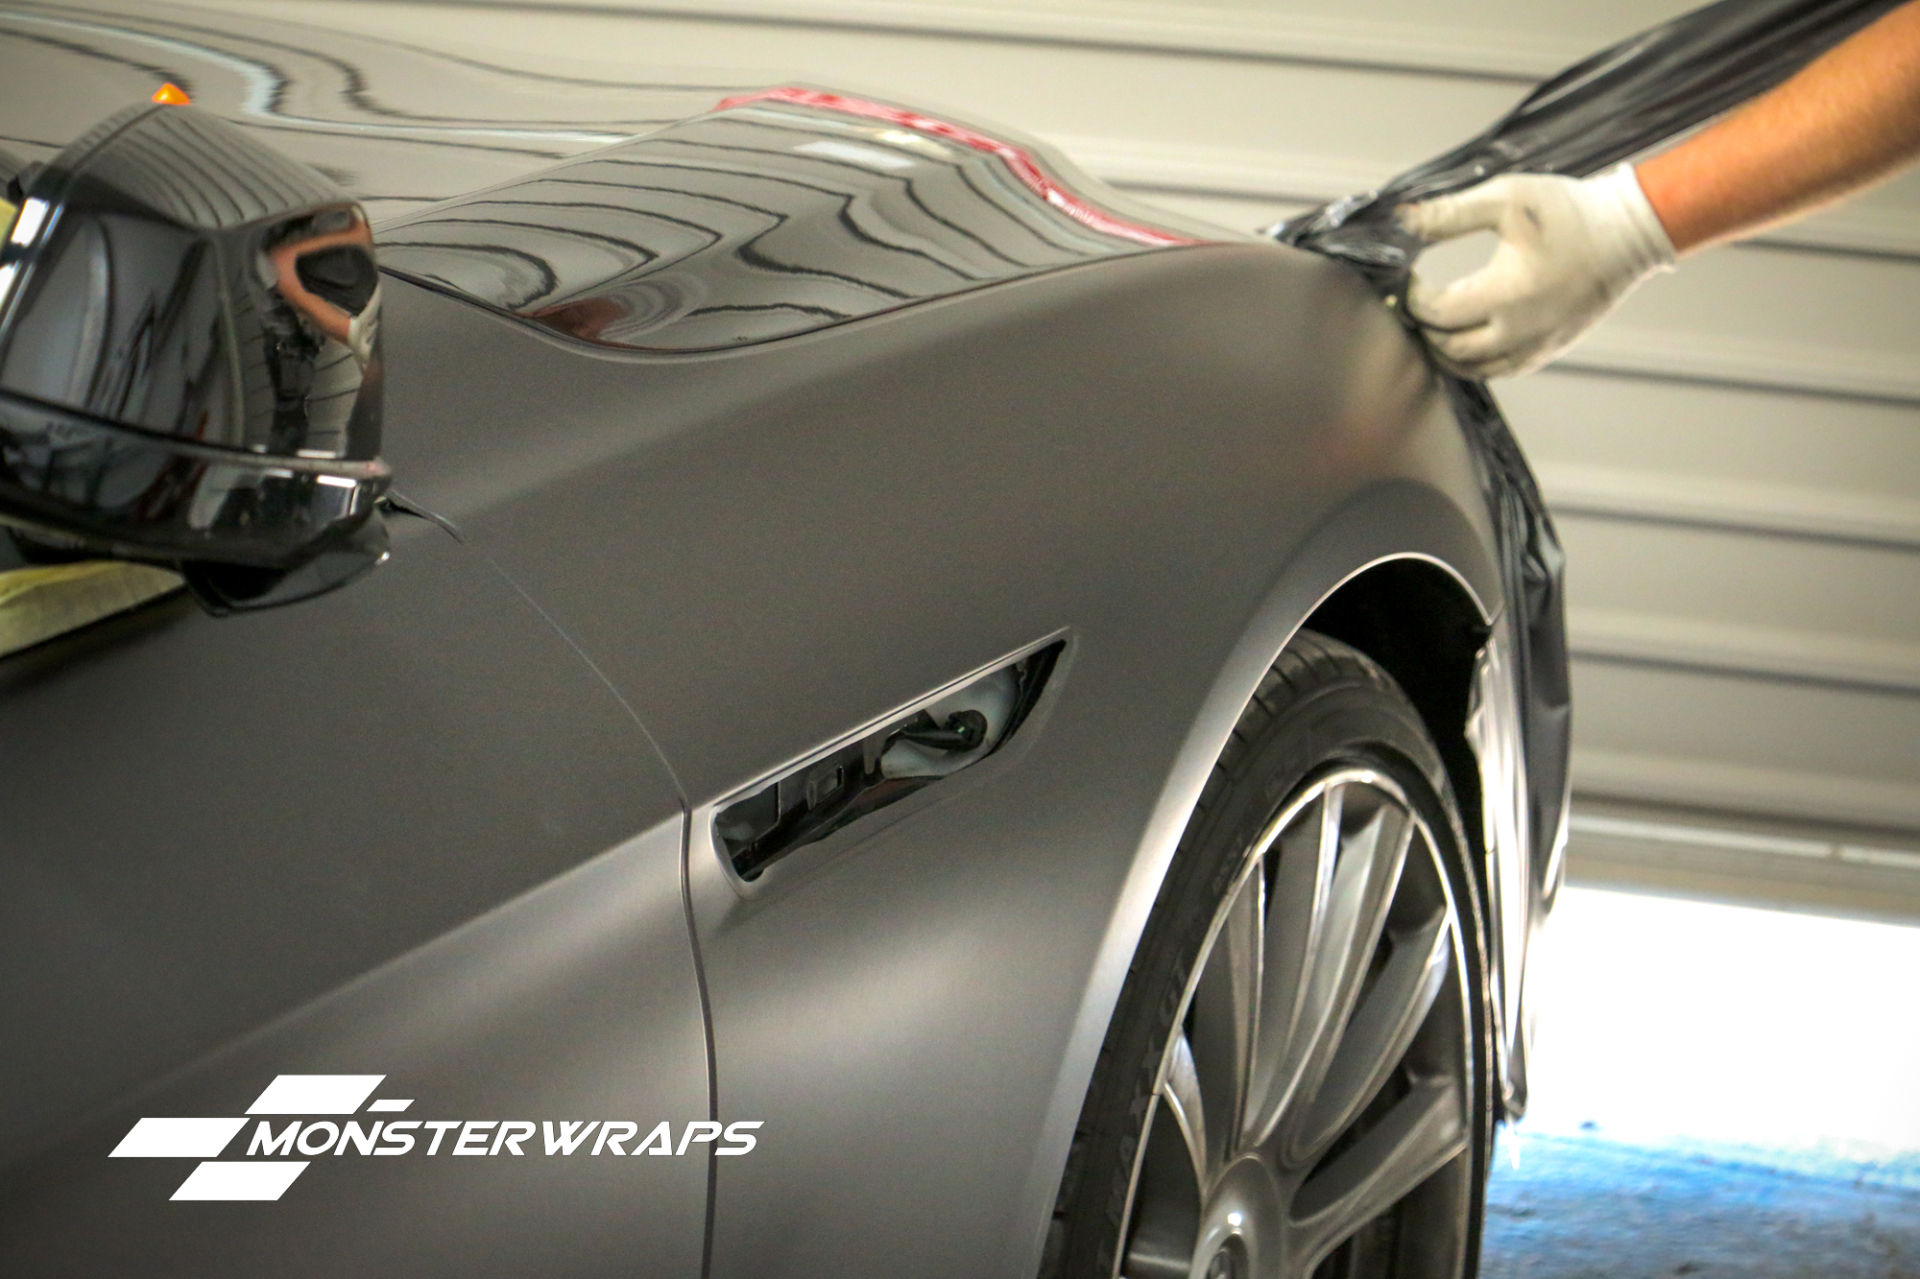 BMW 645i Matte dark grey full car wrap southampton uk